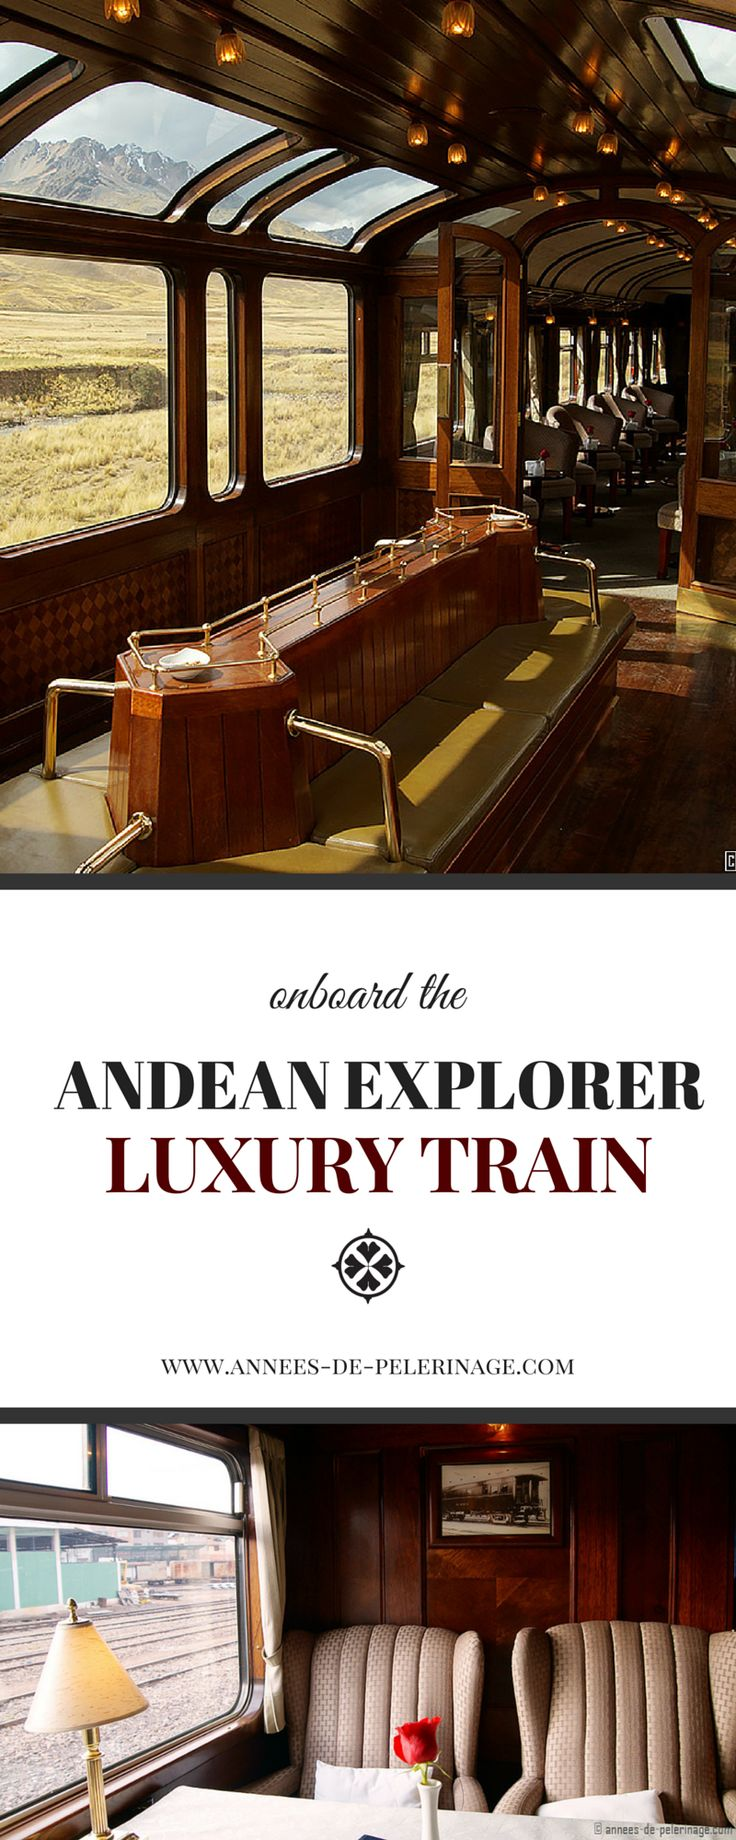 The Andean Explorer is a unique Luxury Train that goes from Cusco to Puno. Operated by Peru Rail it is frequently ranked among the top luxury train journeys in the world